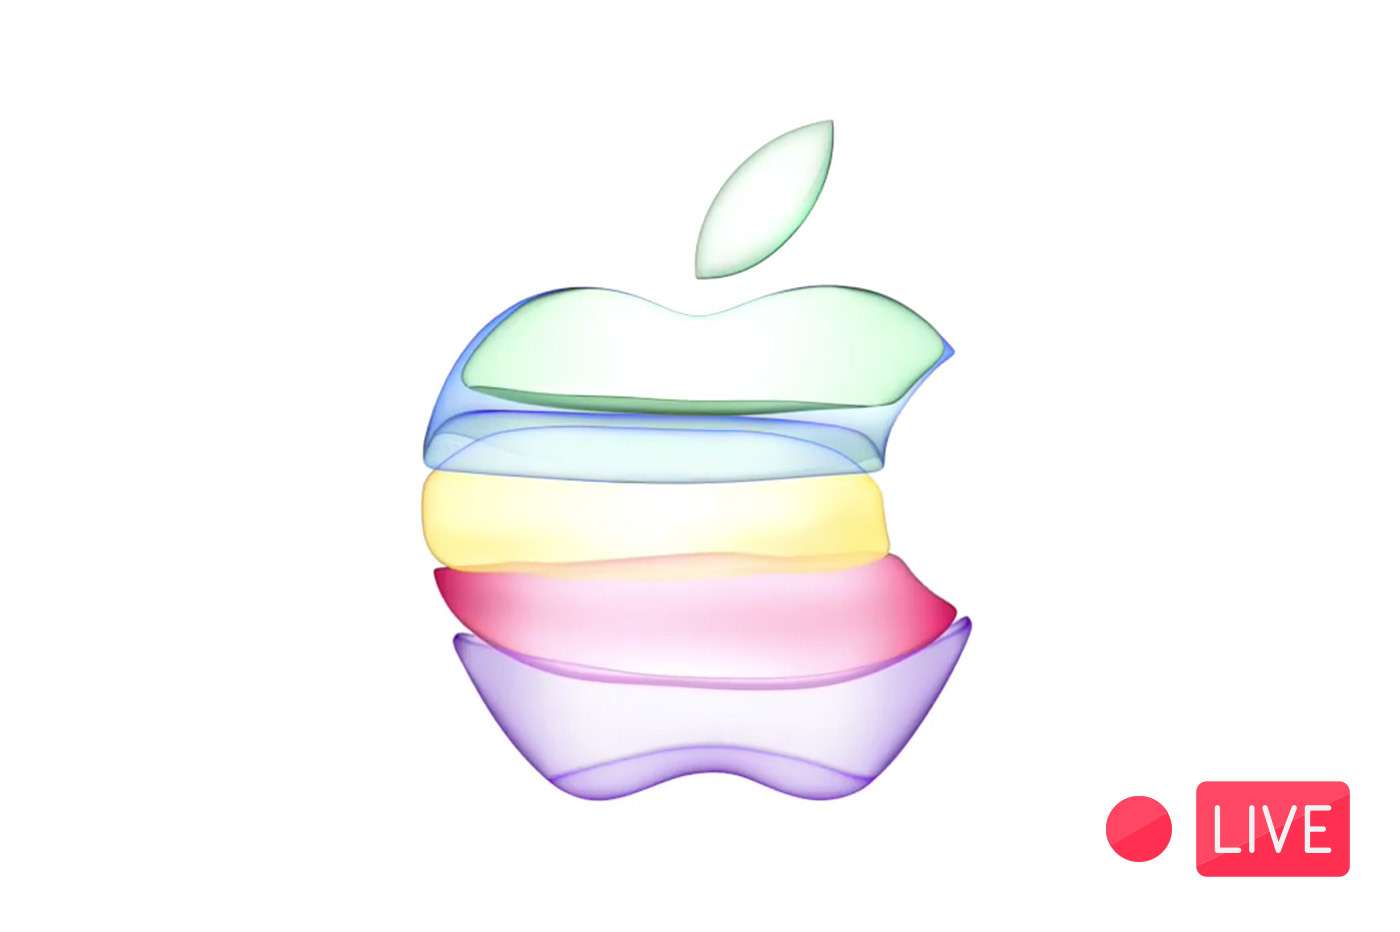 Keynote Apple lancement iPhone 11 direct